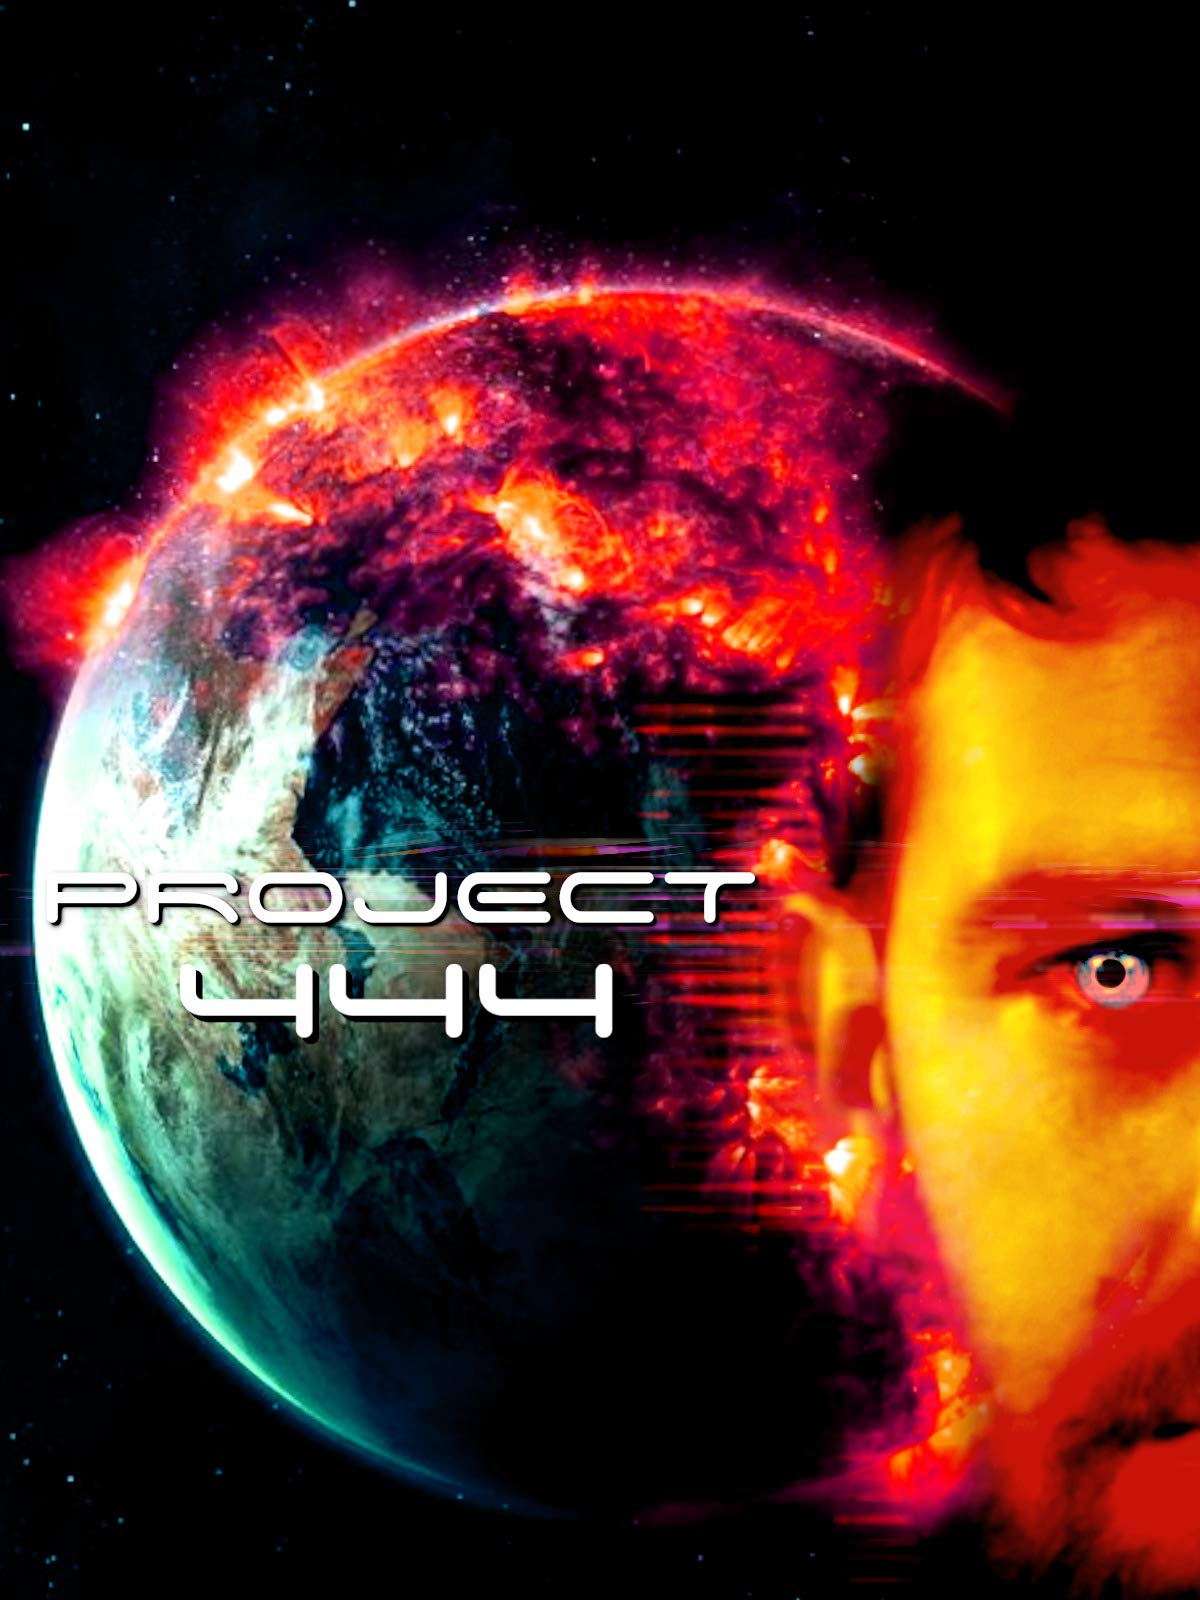 Project 444